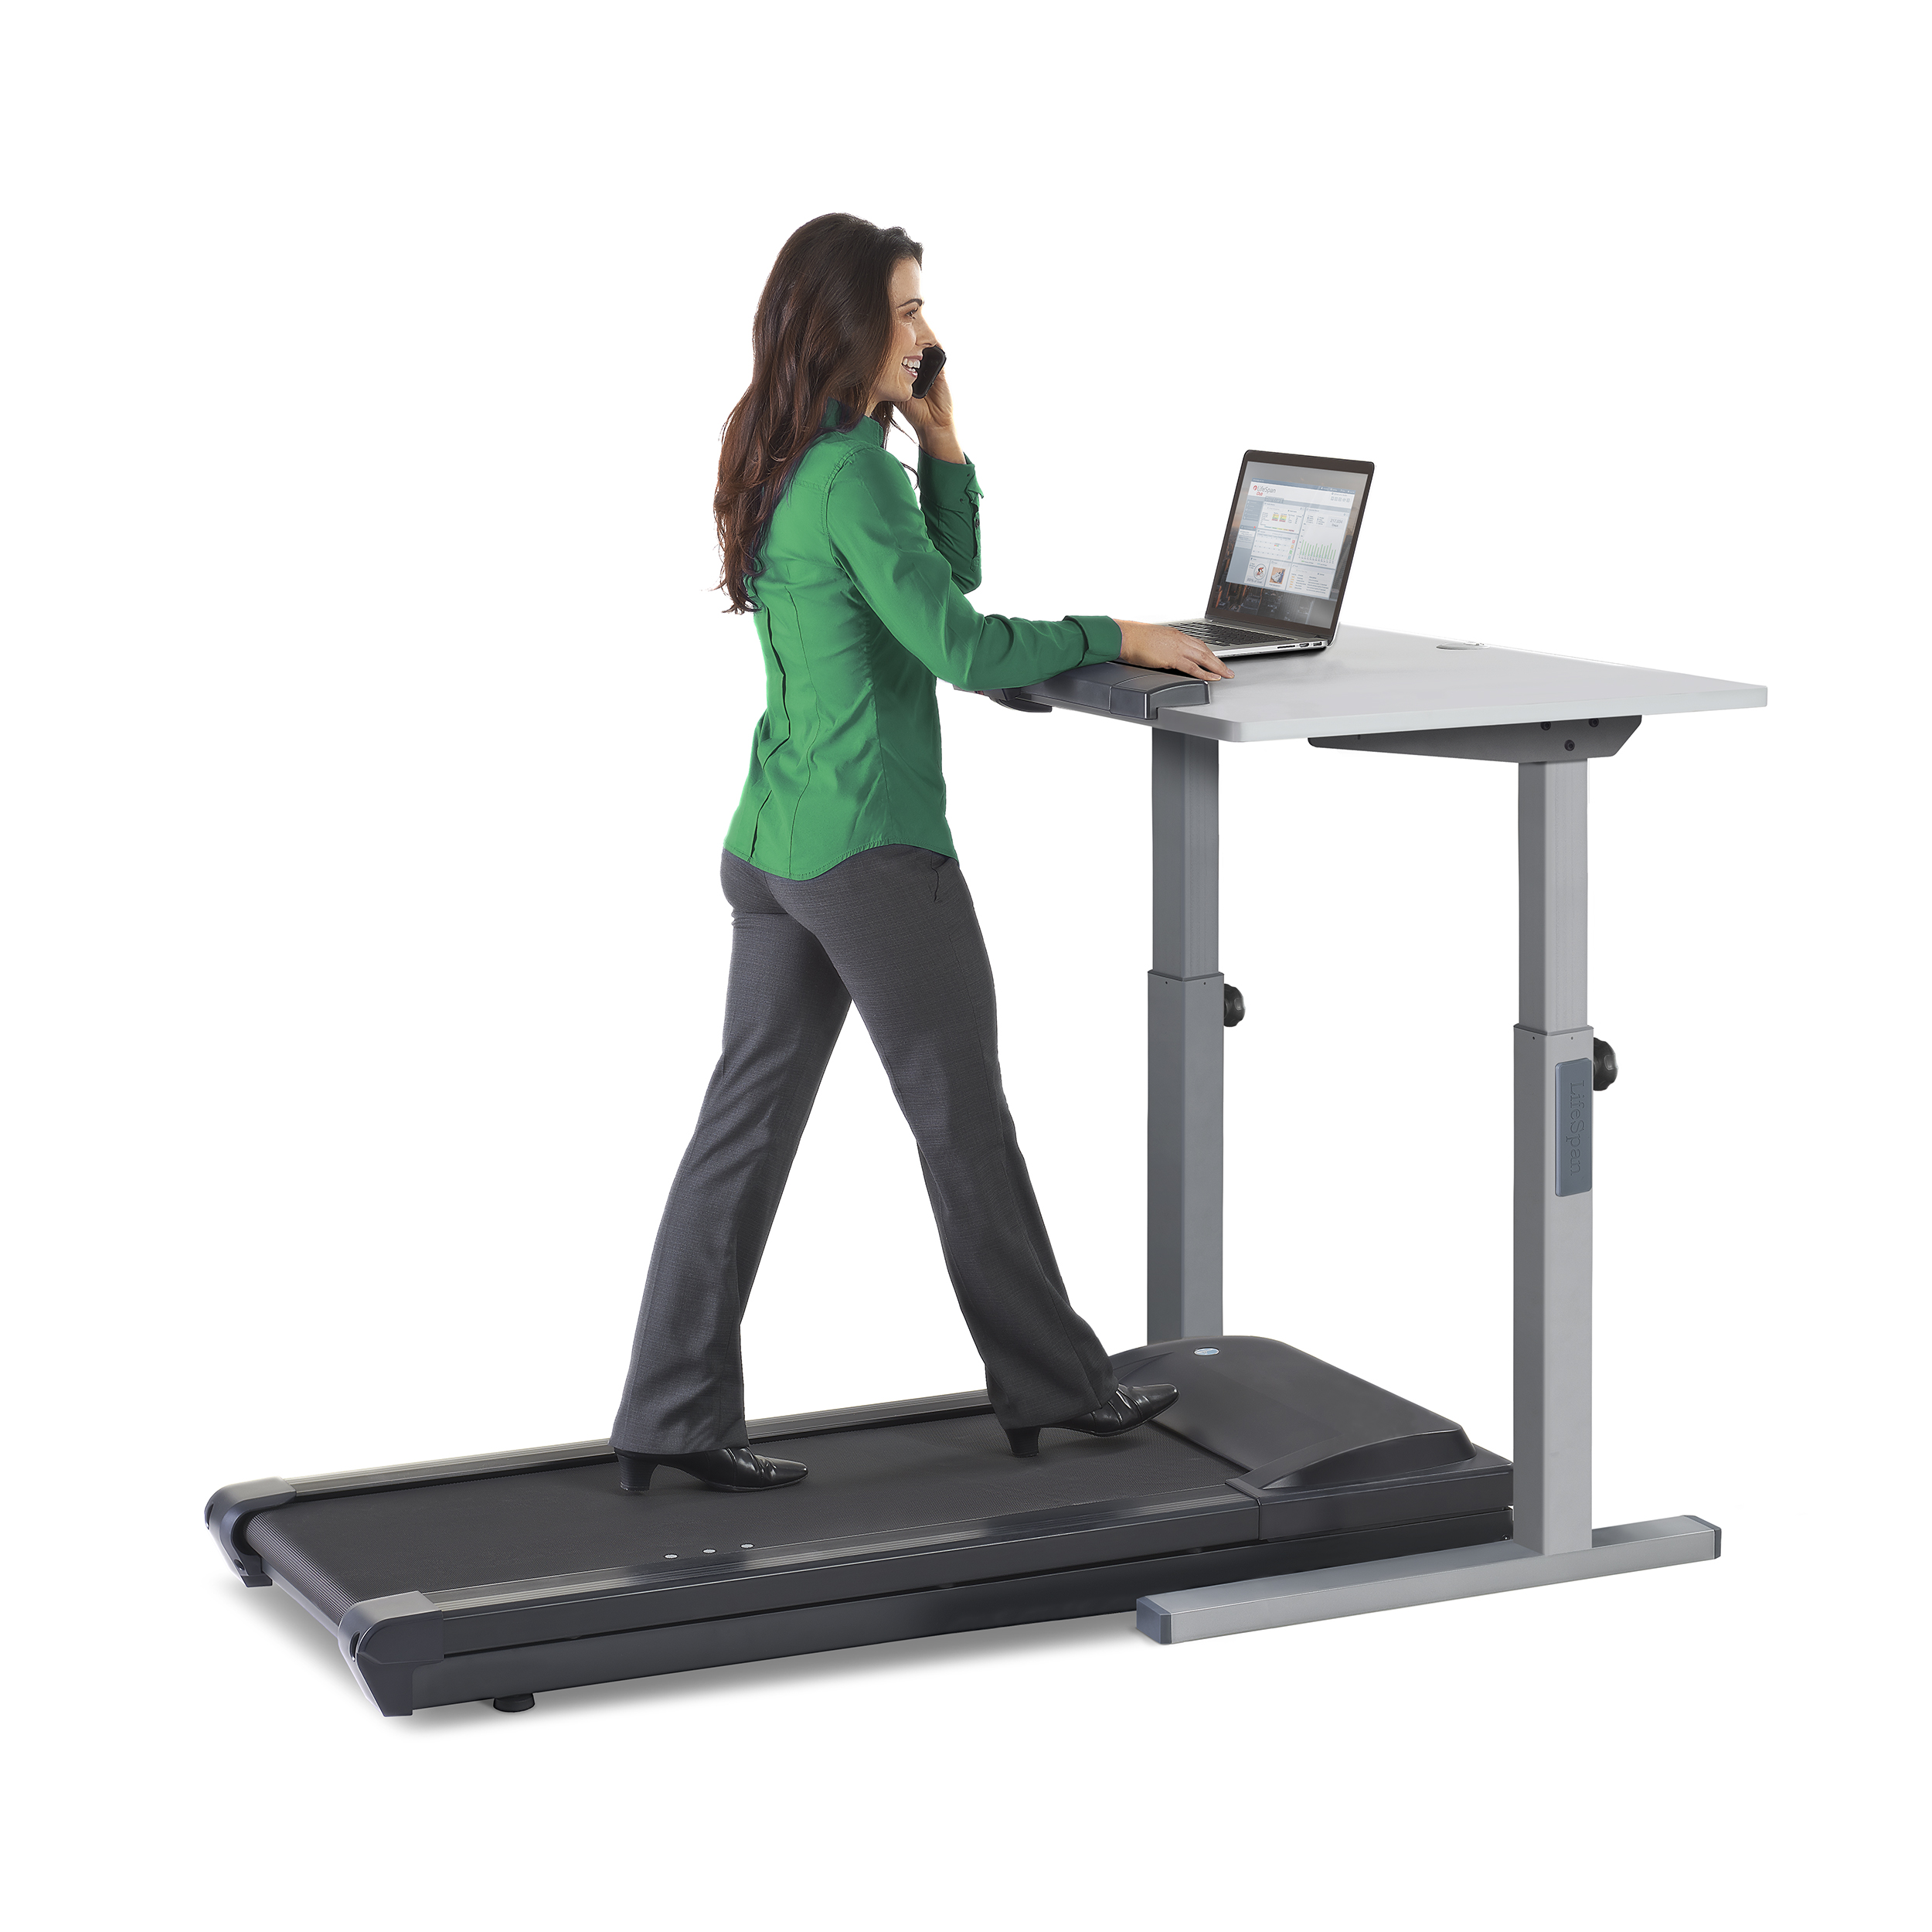 desk walk product down under stand treadmill sit customizable to excellence move